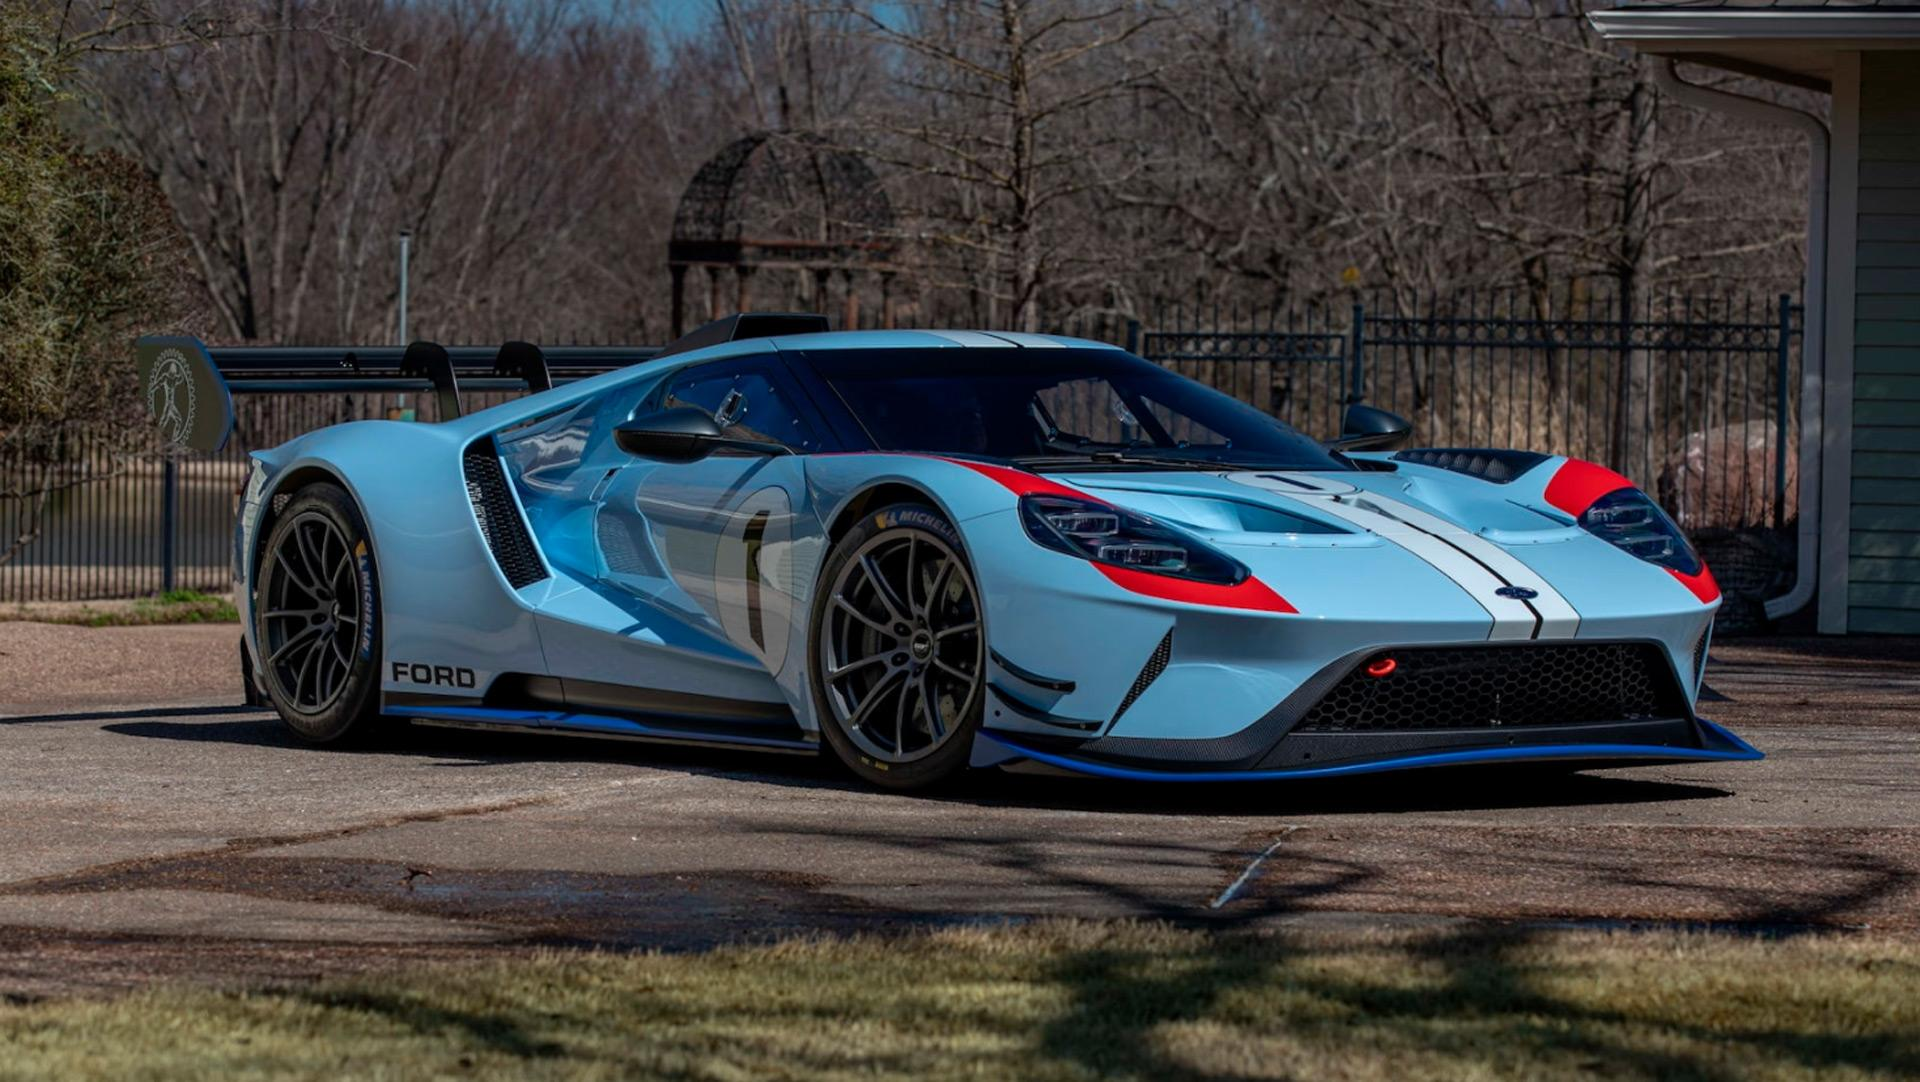 Ford gt mkii photo credit mecum 100784712 h